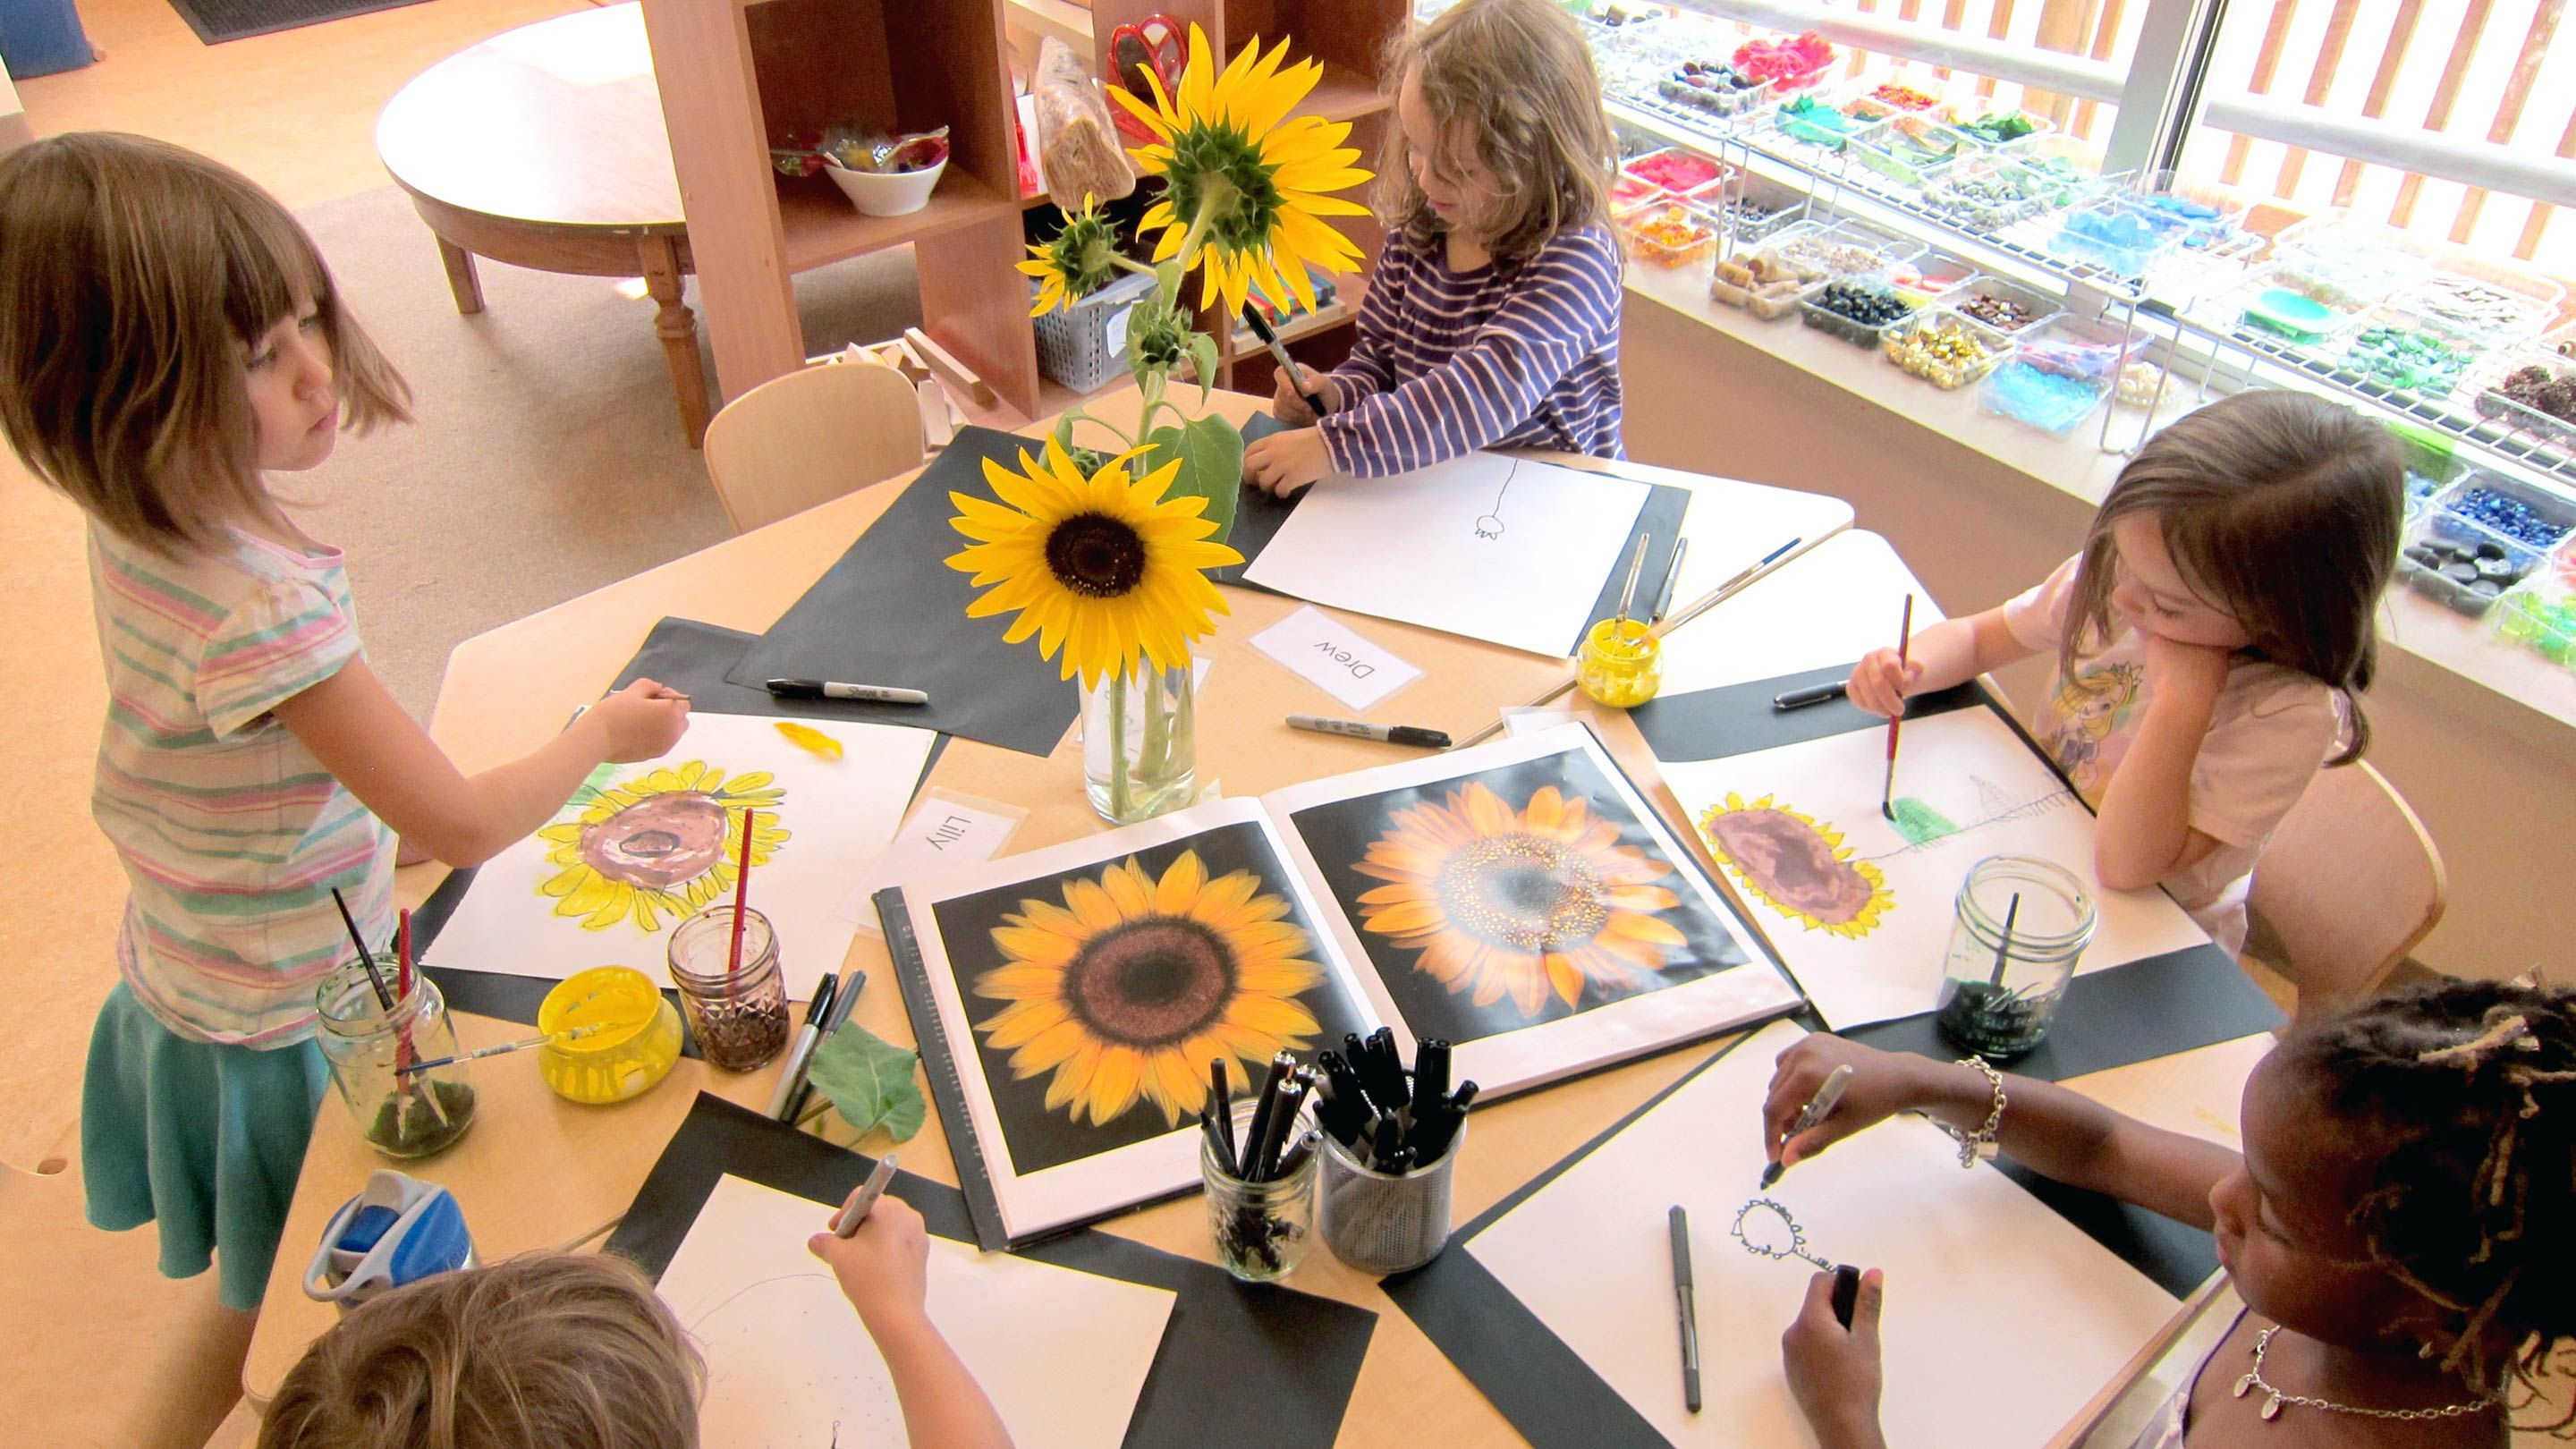 Five first grade girls sit at a round table painting portraits of sunflowers.